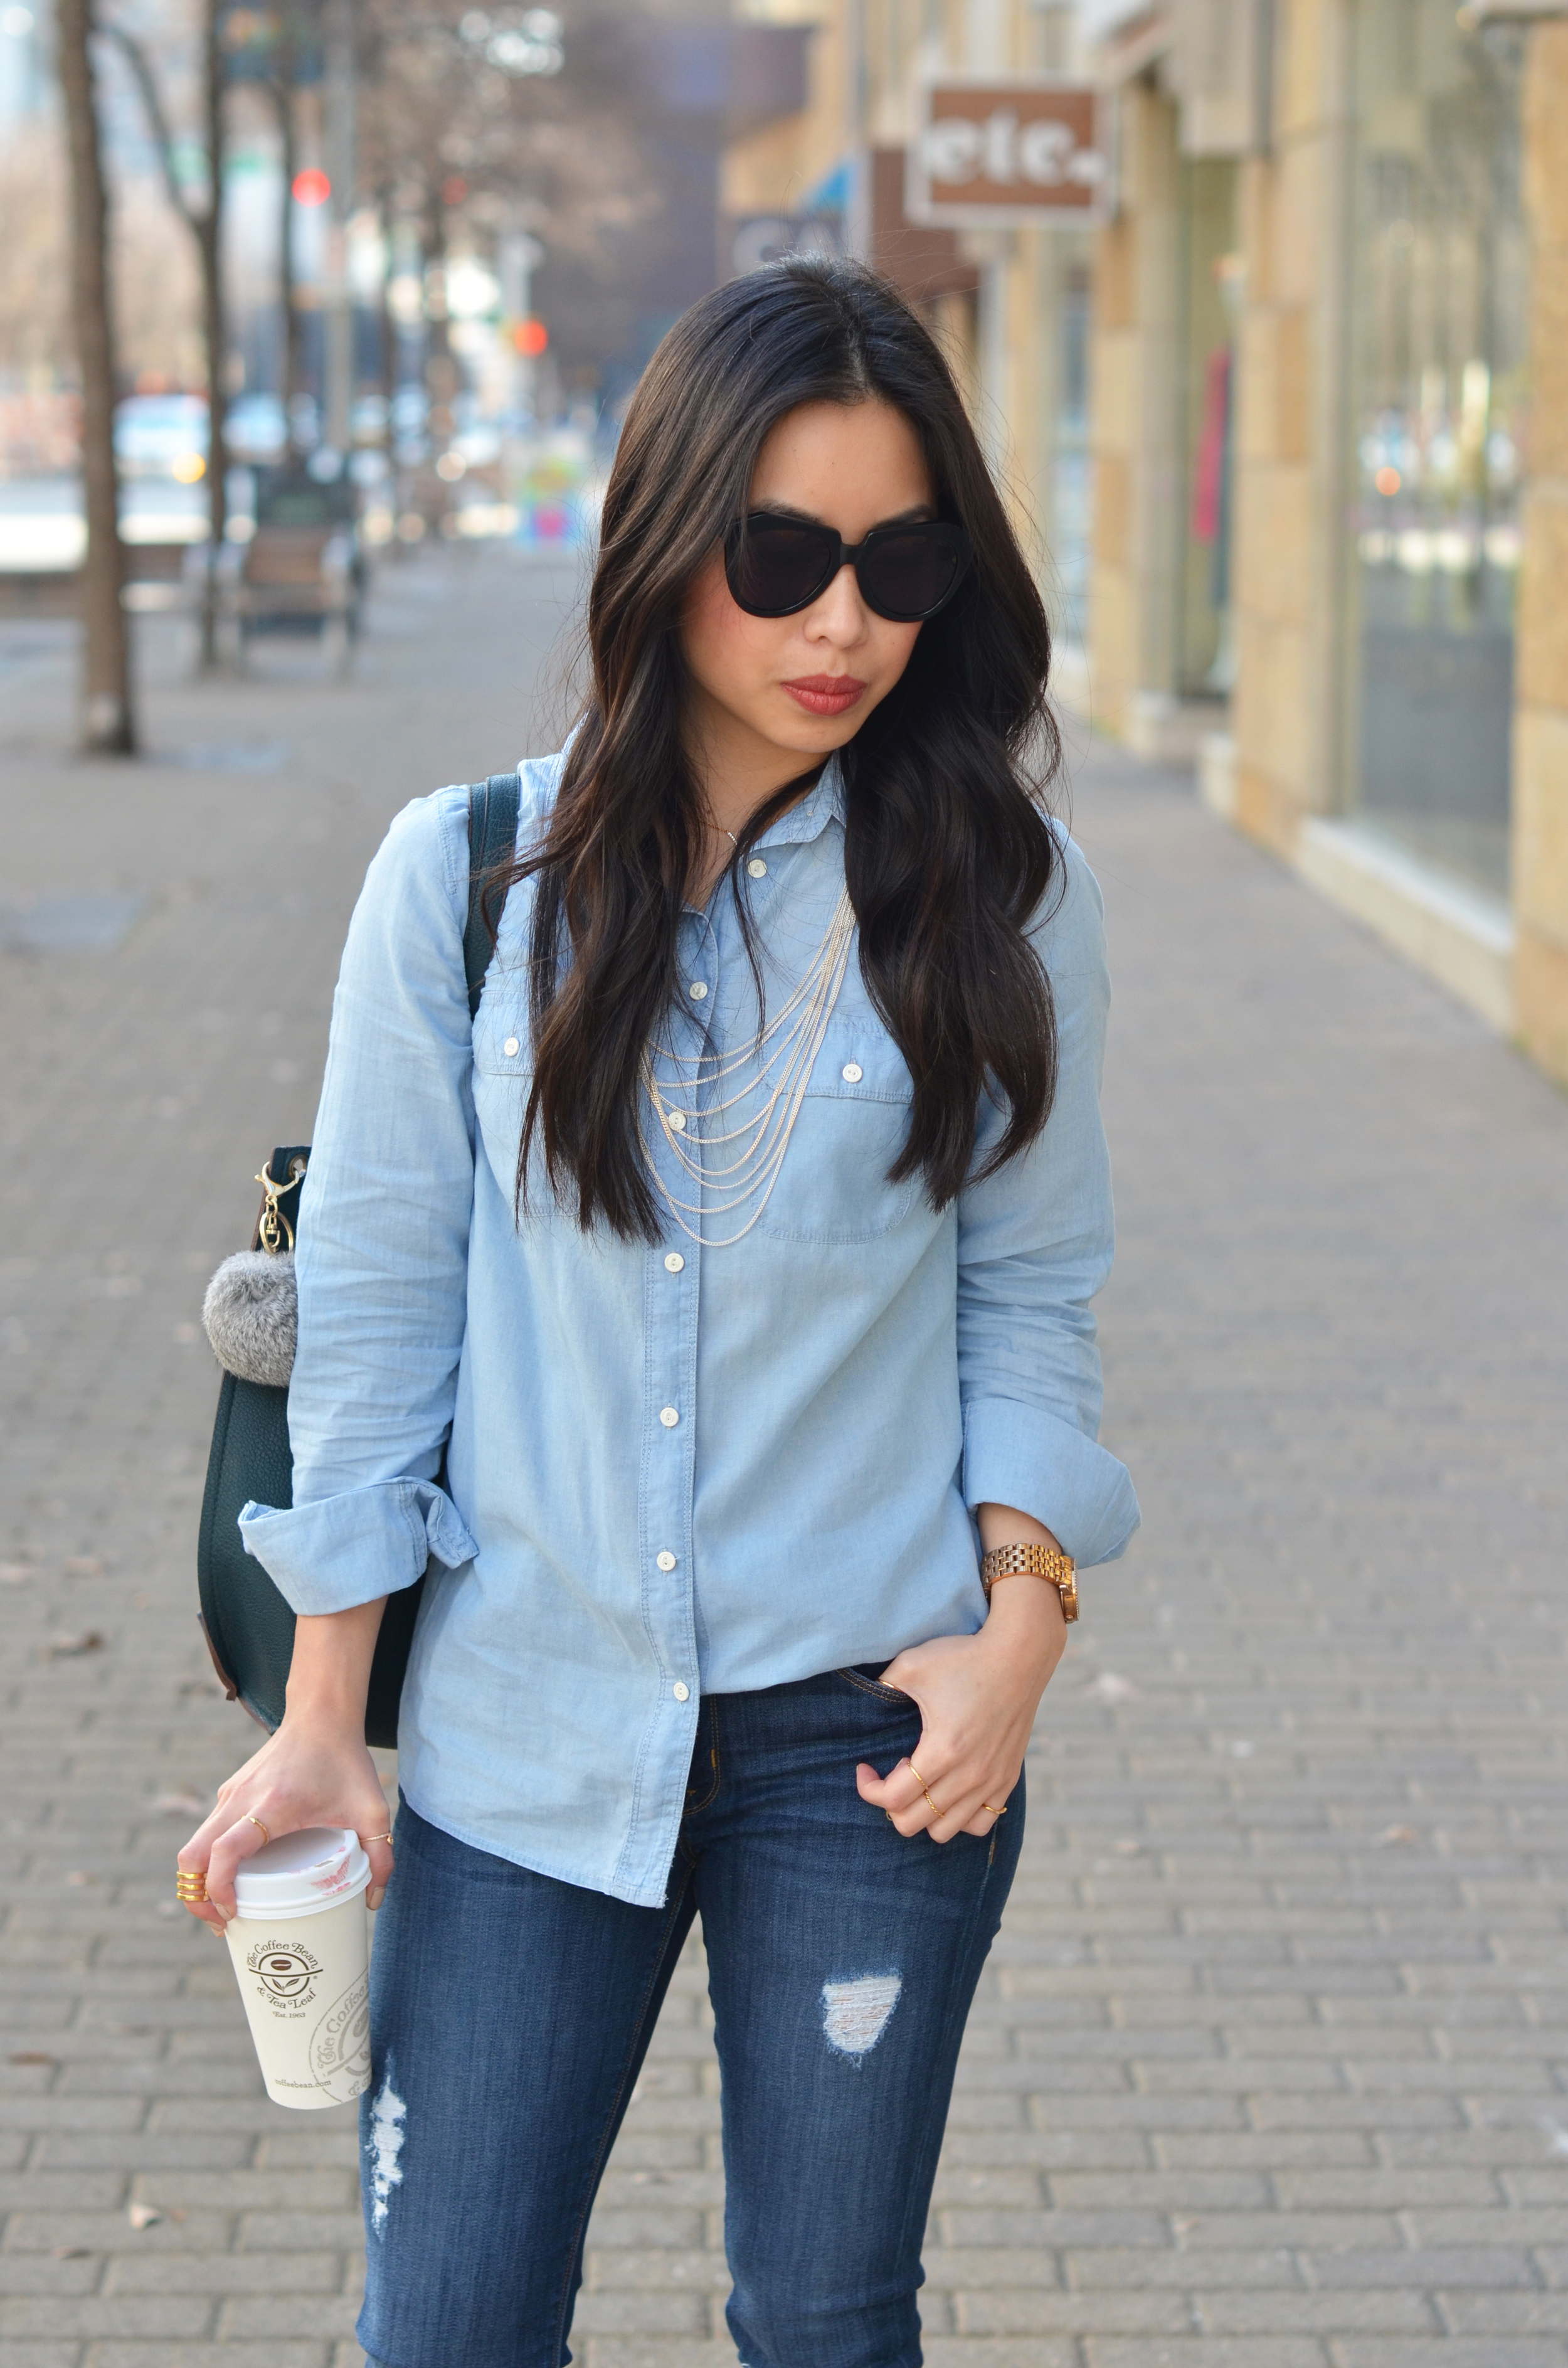 denim x chambray -- jannadoan.com